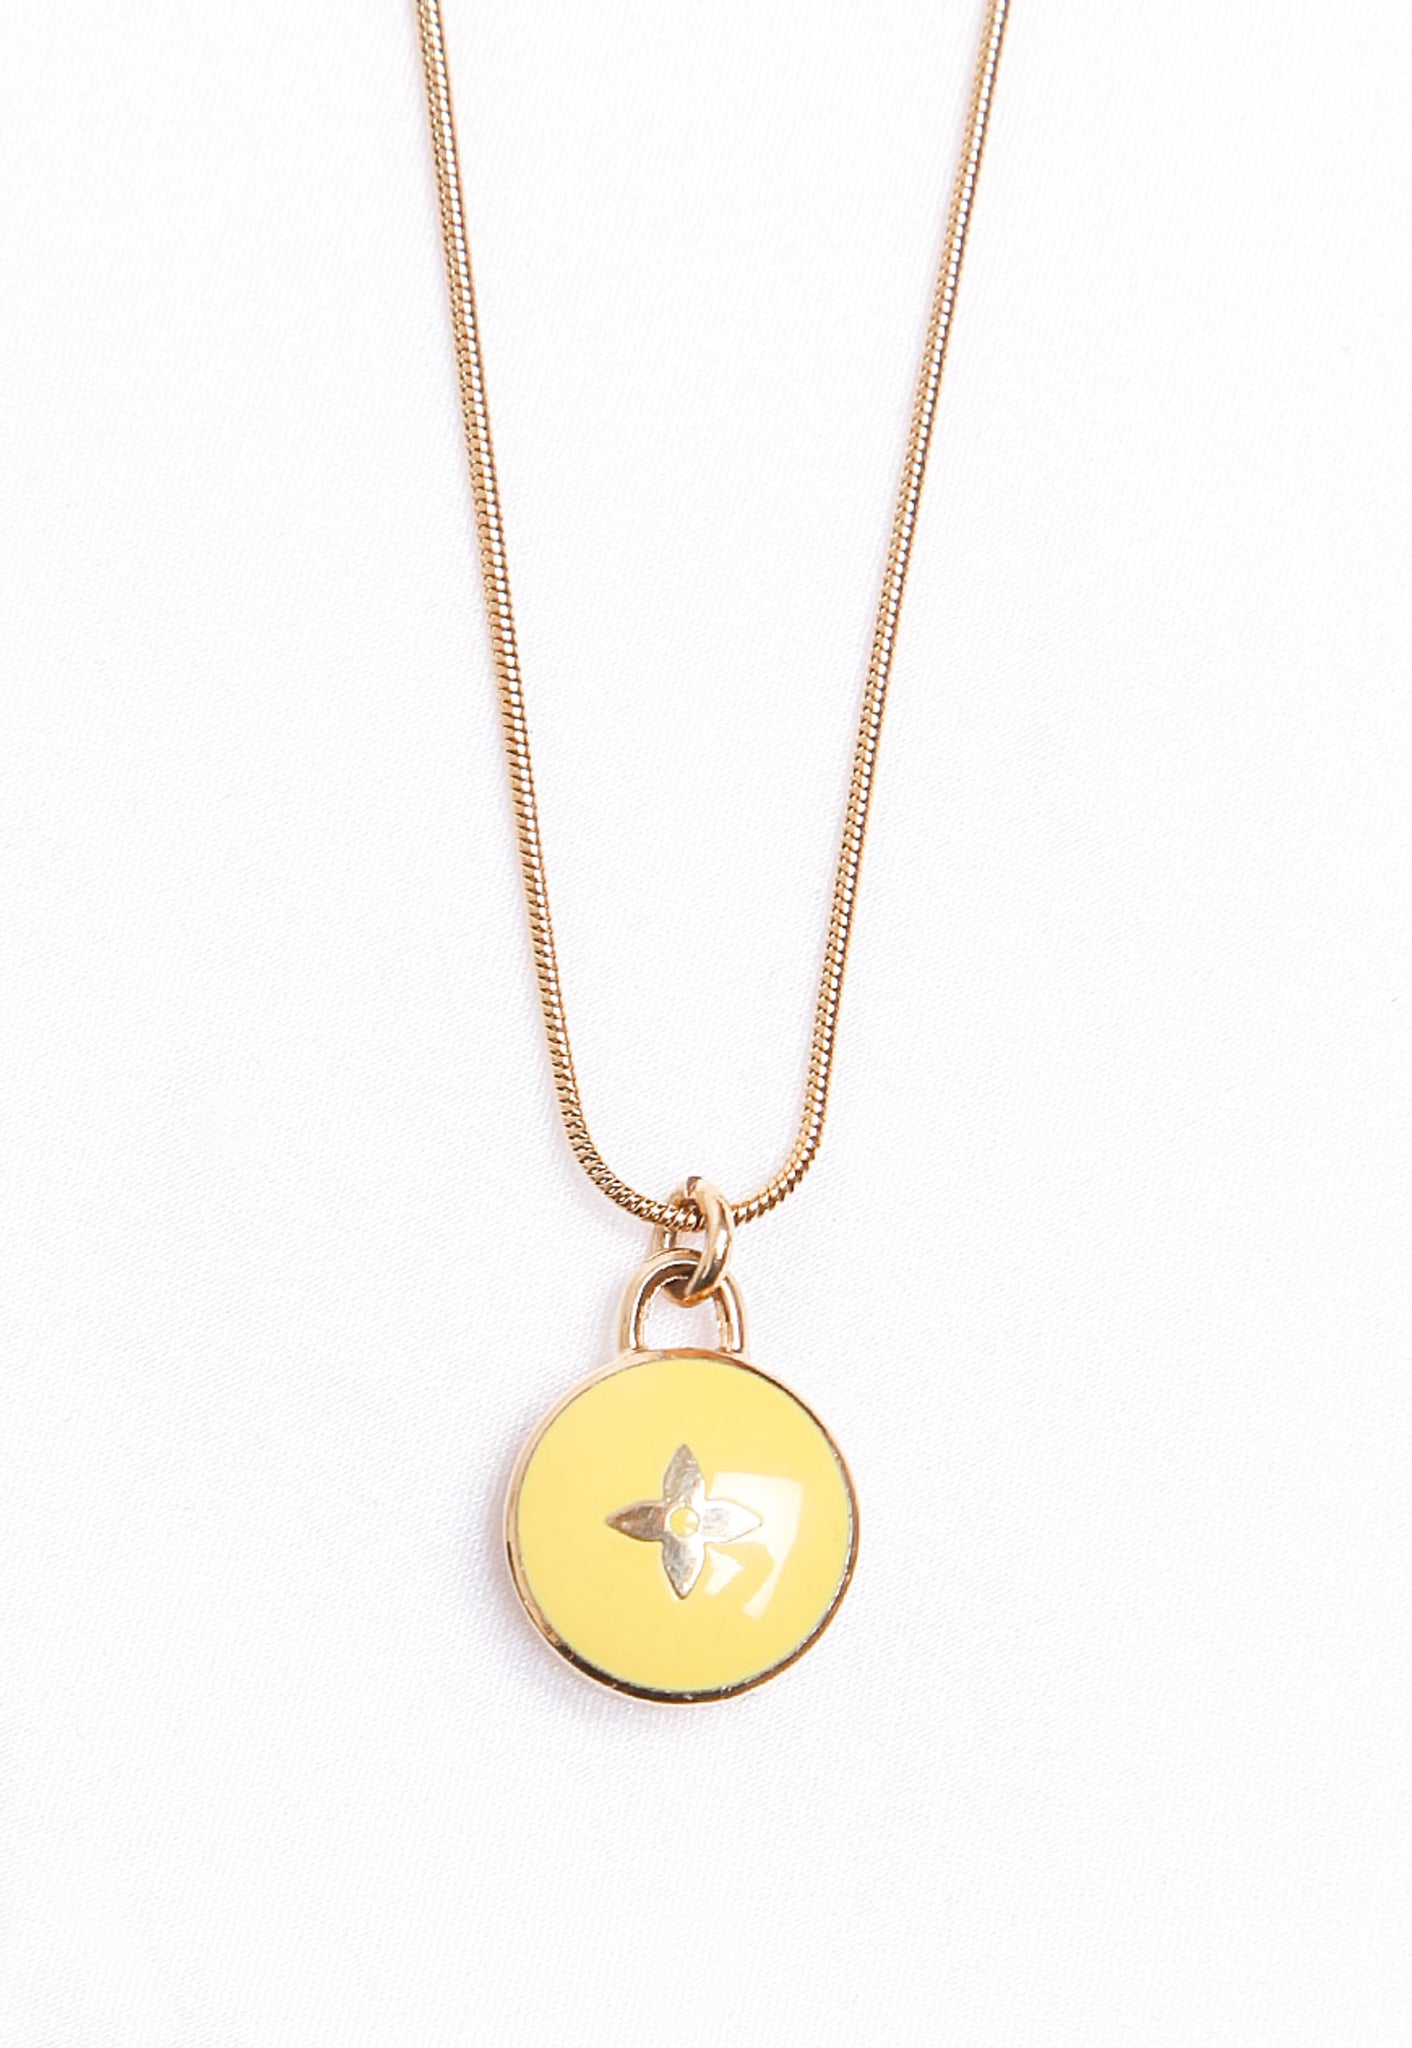 Reworked Louis Vuitton Yellow Flower Pendant Necklace